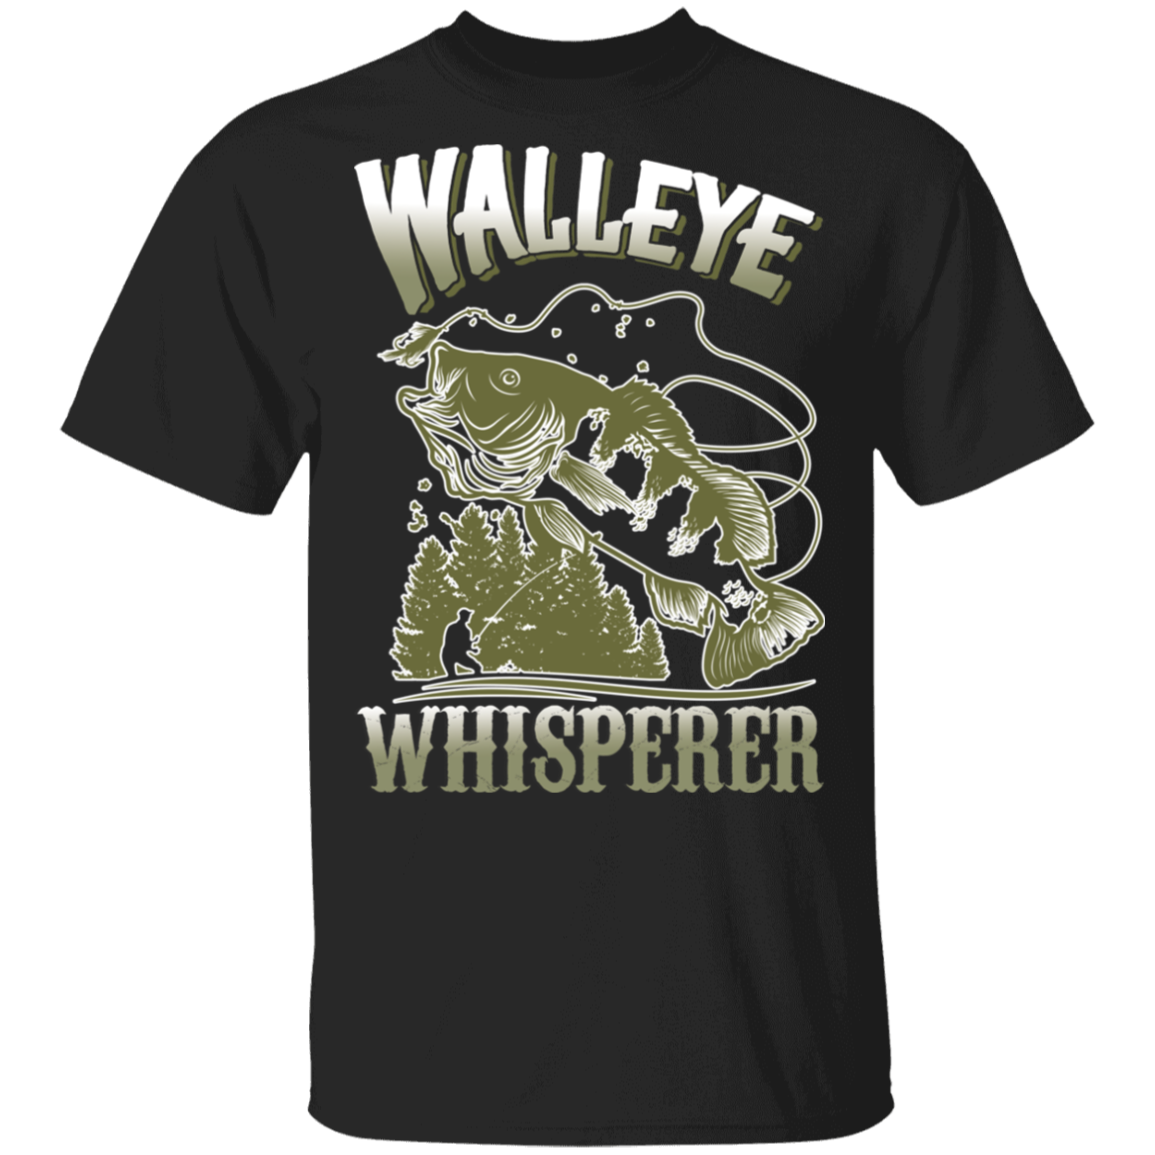 Walleye Whisperer T-Shirt Walleye Fishing Funny Fish Quote Shirt Best Gift For Fisherman